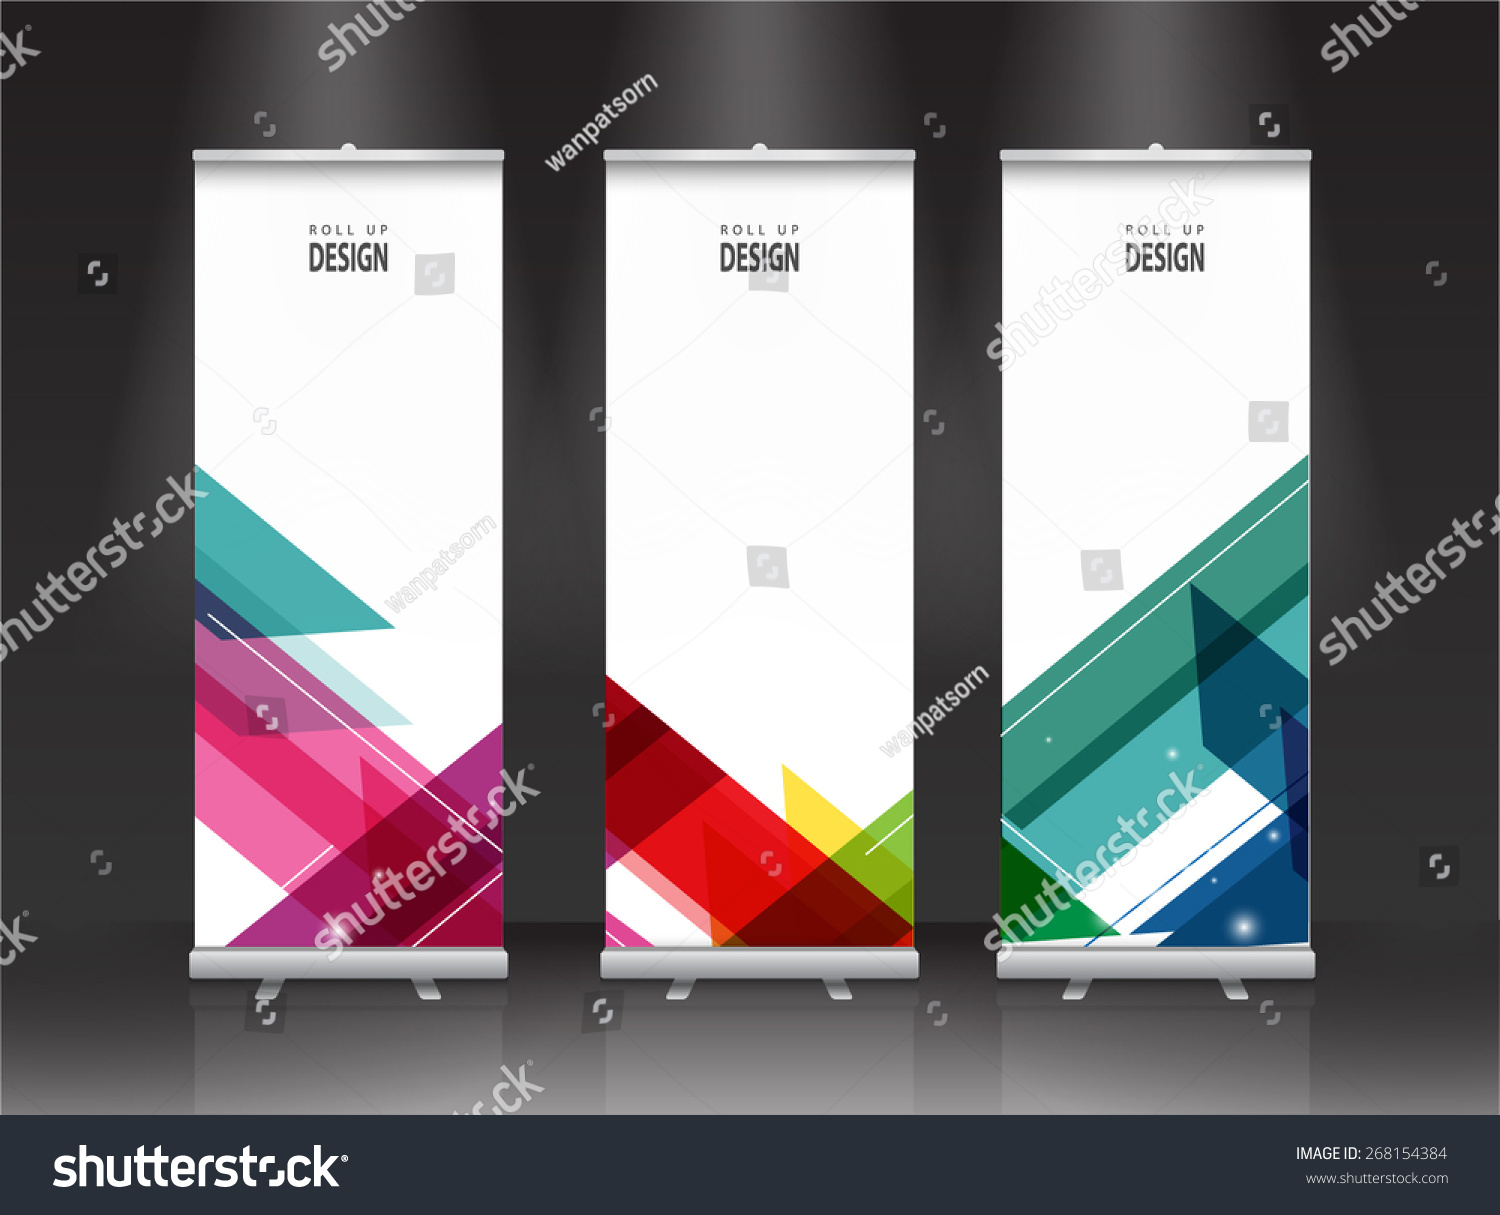 Exhibition Stand Design Template : Roll banner stand design vector stock